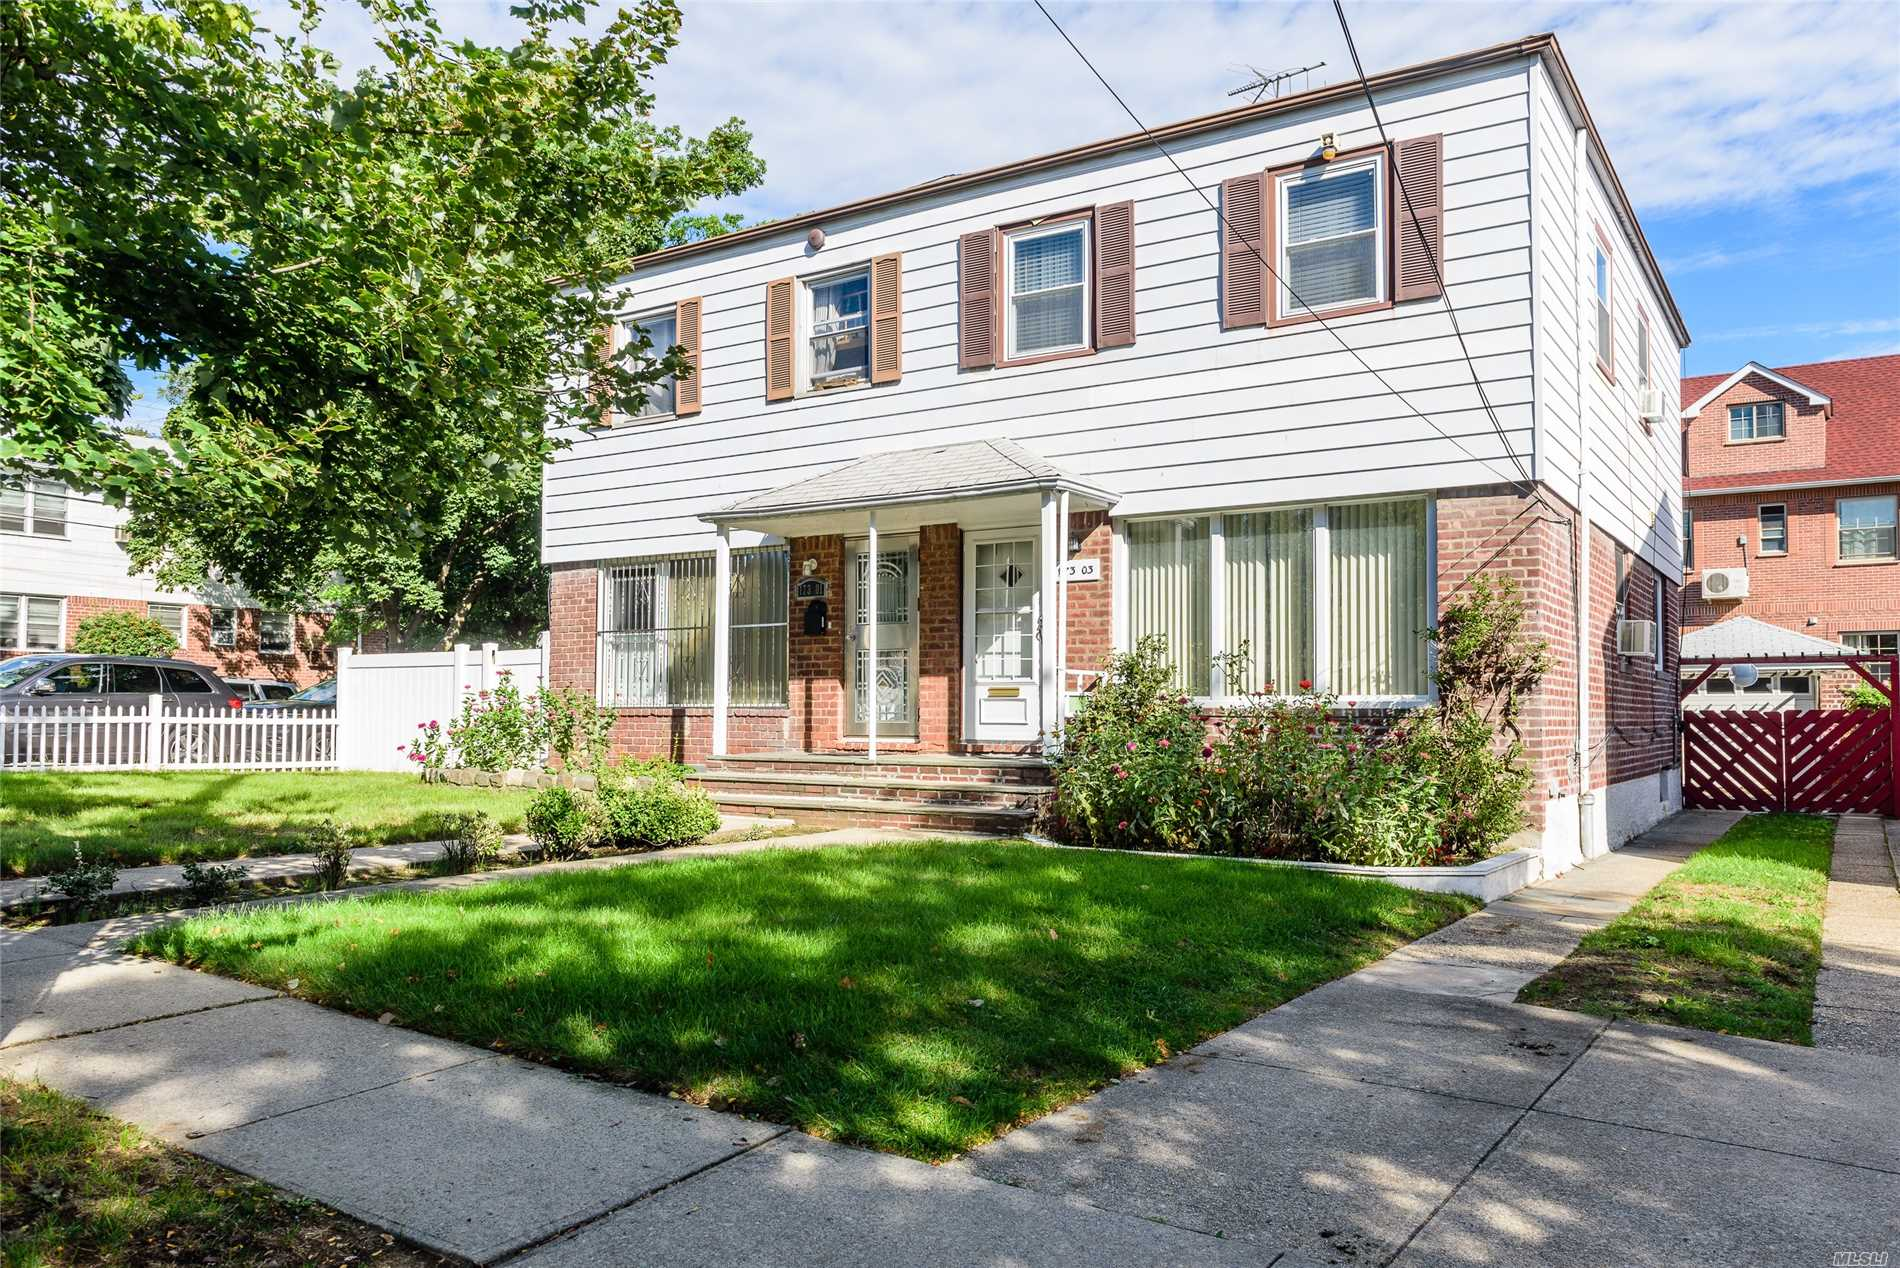 Full 3 Br 1.5 Bath Sd Home Very Well Maintained, Offered Its As Is Condition.